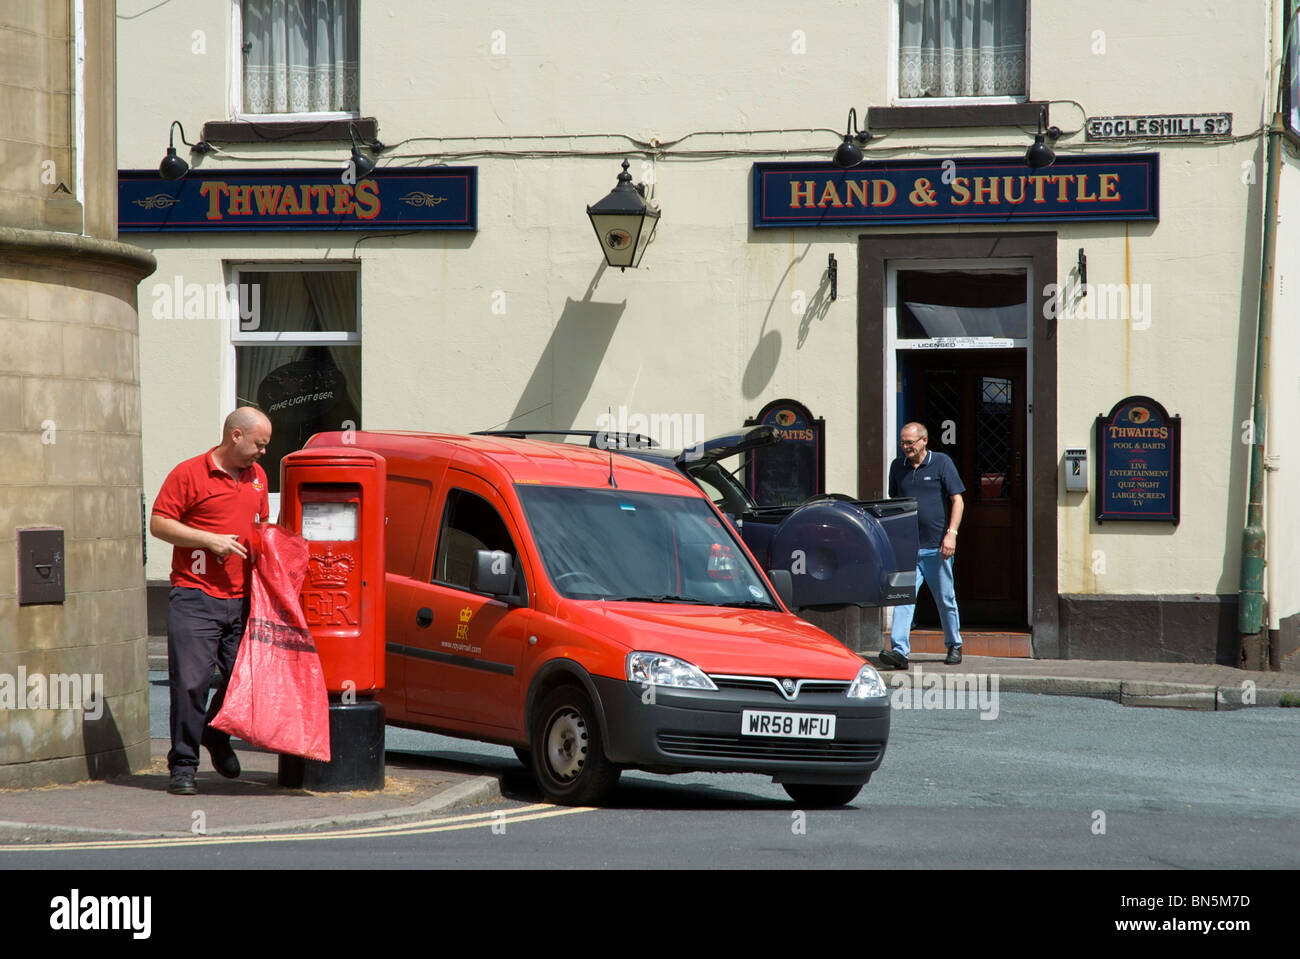 Postman emptying post-box in front of Hand & Shuttle pub, Padiham, Lancashire, England UK - Stock Image